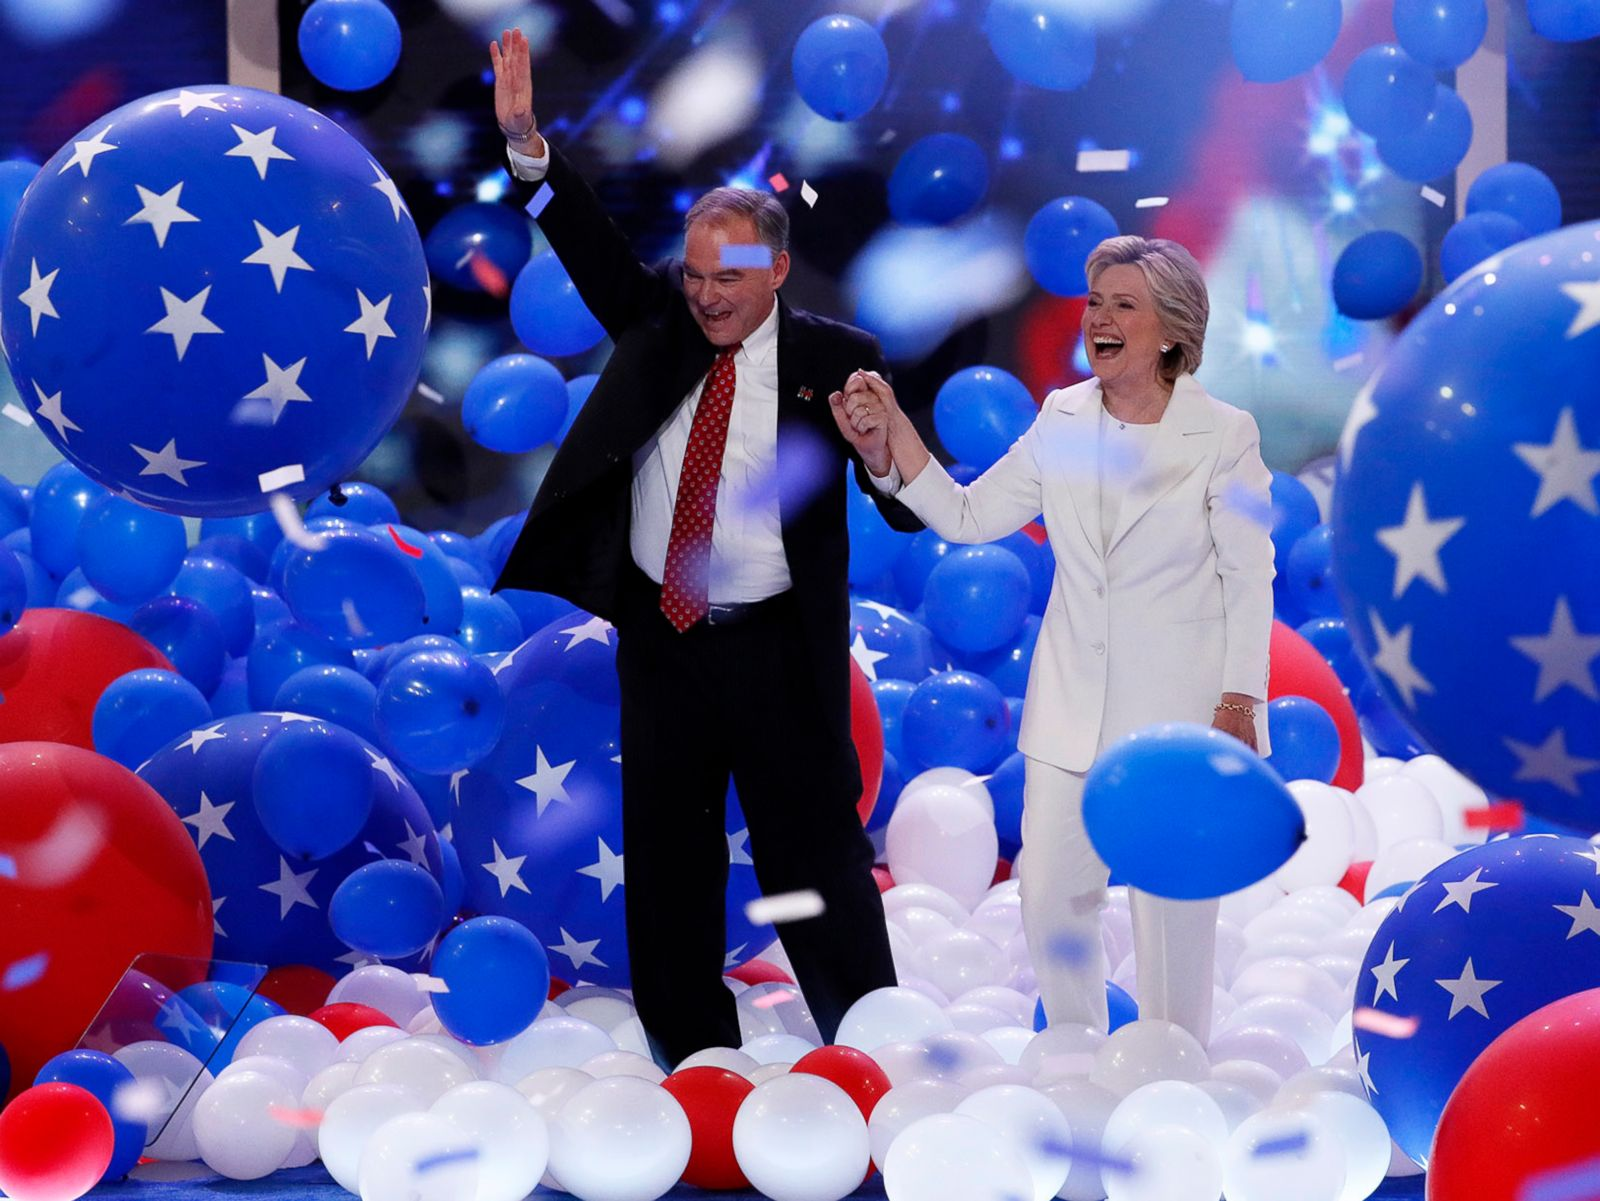 PHOTO: Democratic presidential nominee Hillary Clinton and Democratic vice presidential nominee Sen. Tim Kaine, walk through the falling balloons during the final day of the Democratic National Convention in Philadelphia, July 28, 2016.